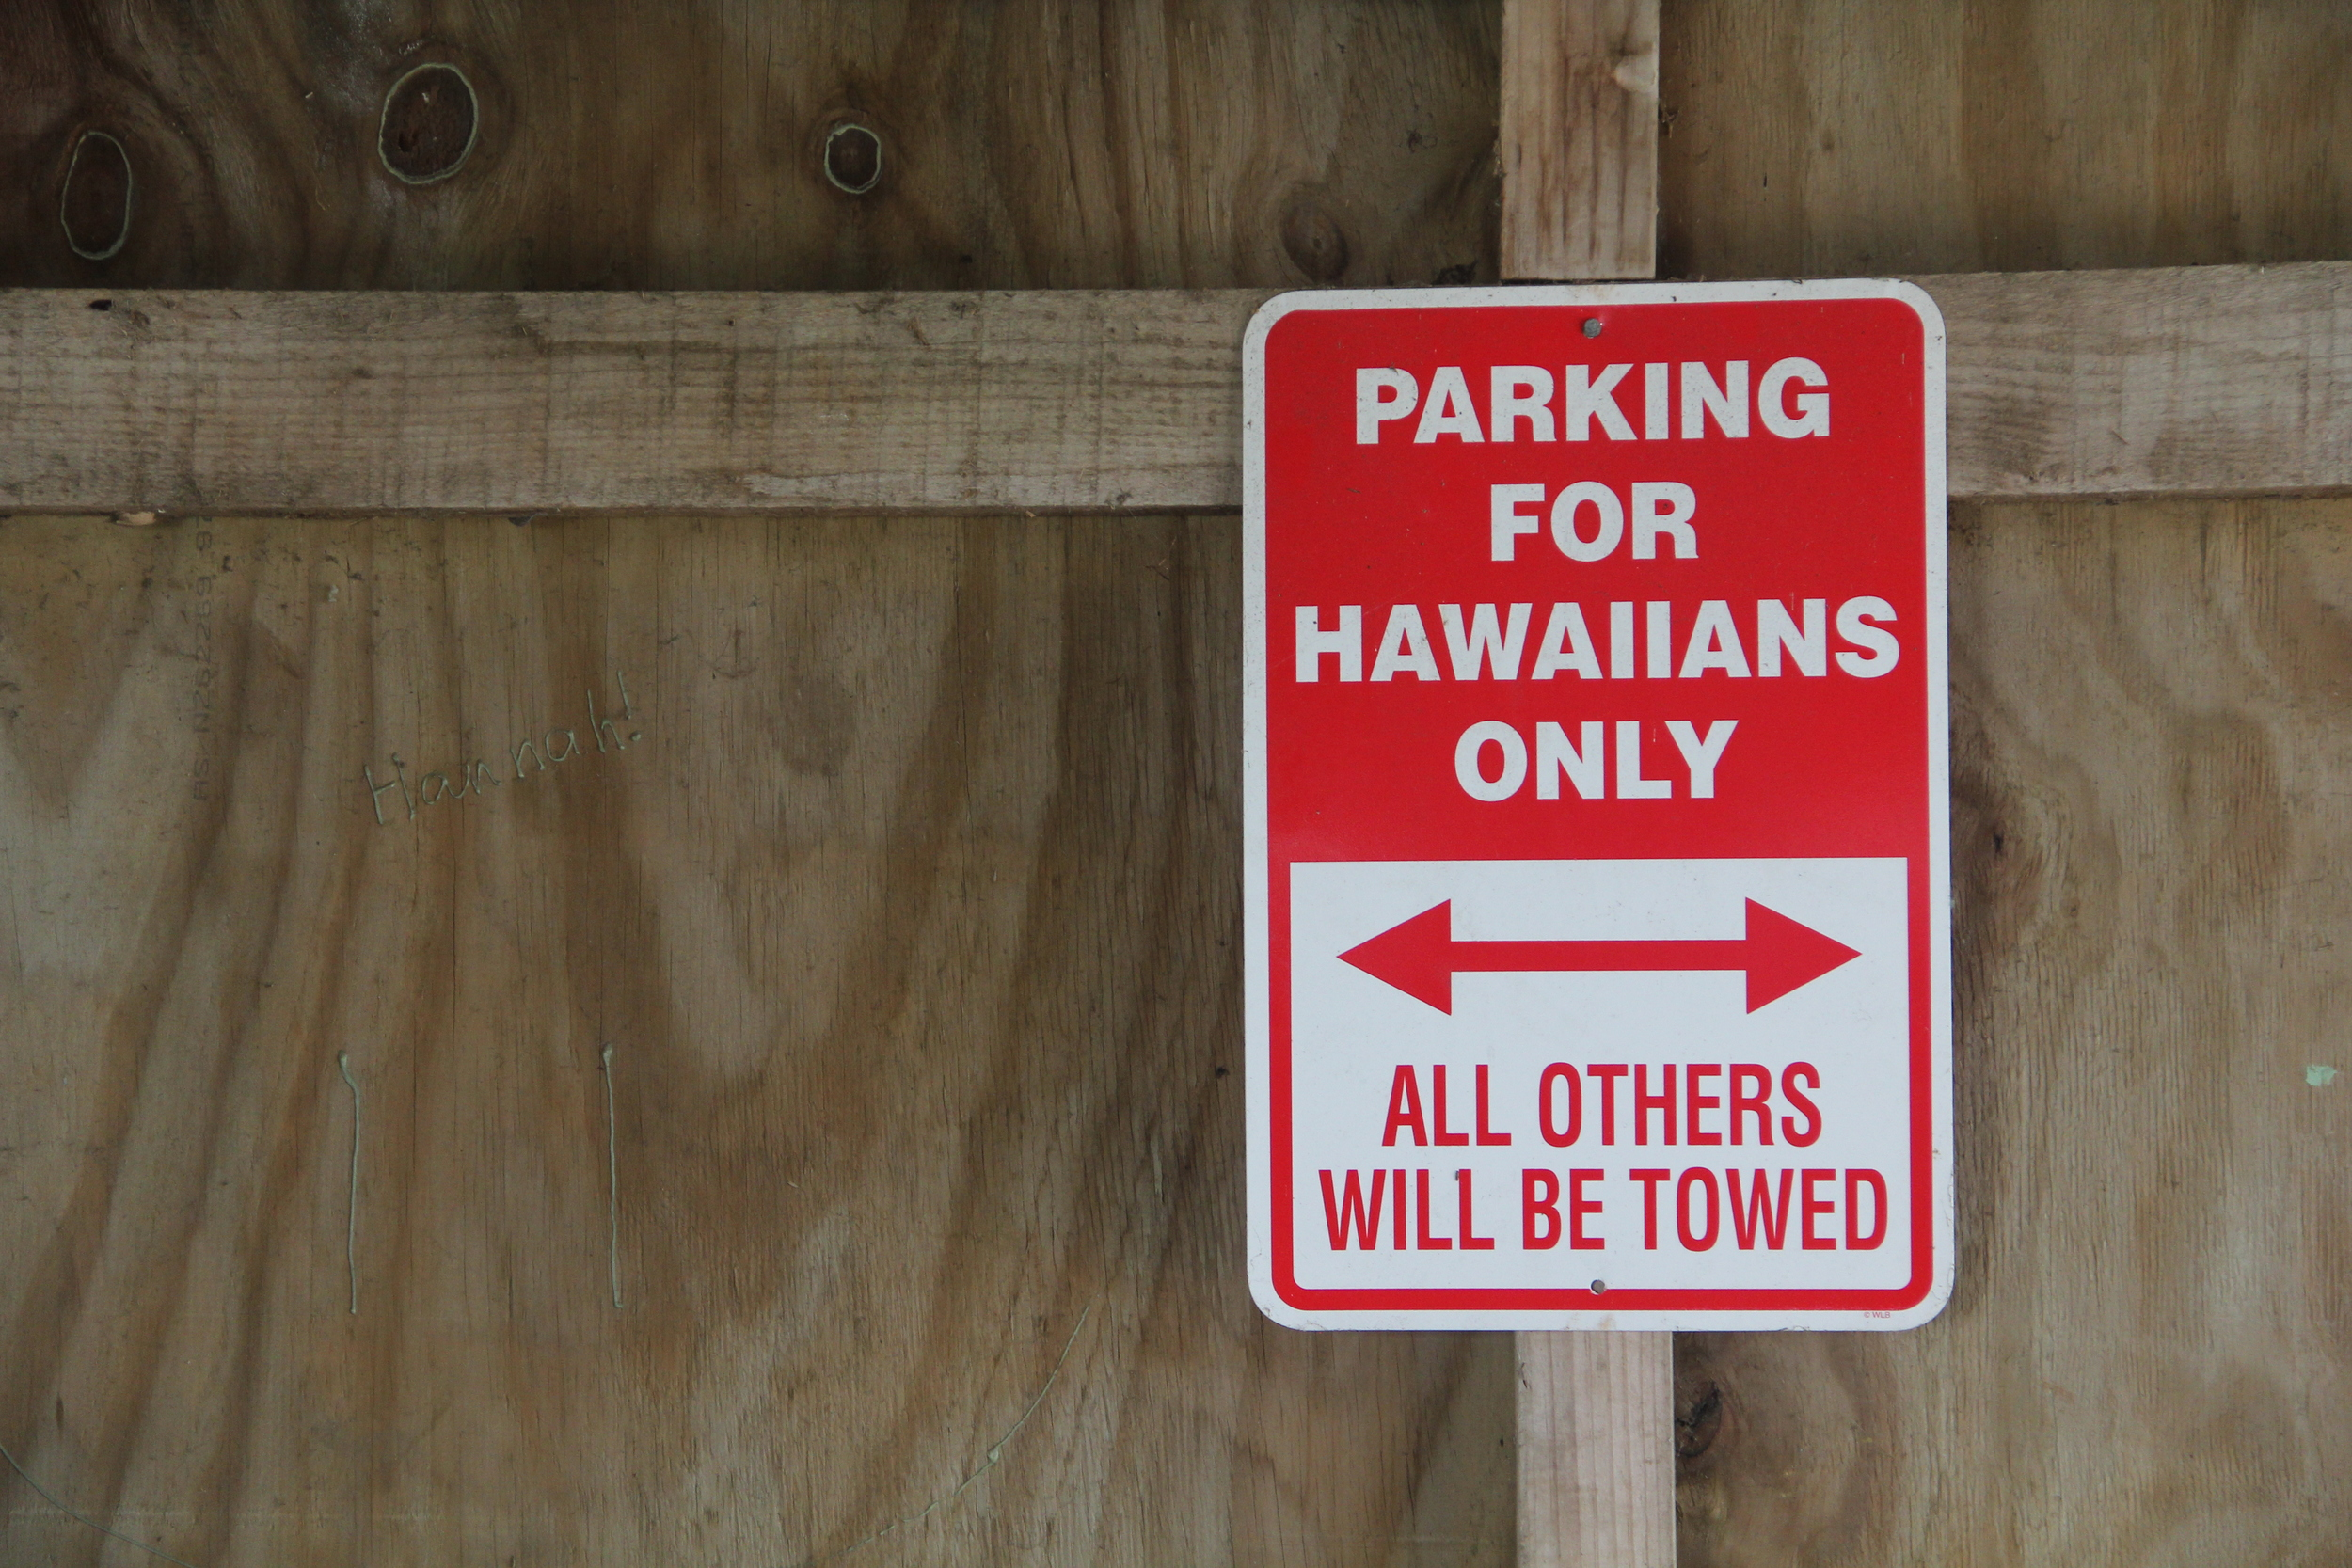 26-2-14 Hawaiians only.JPG